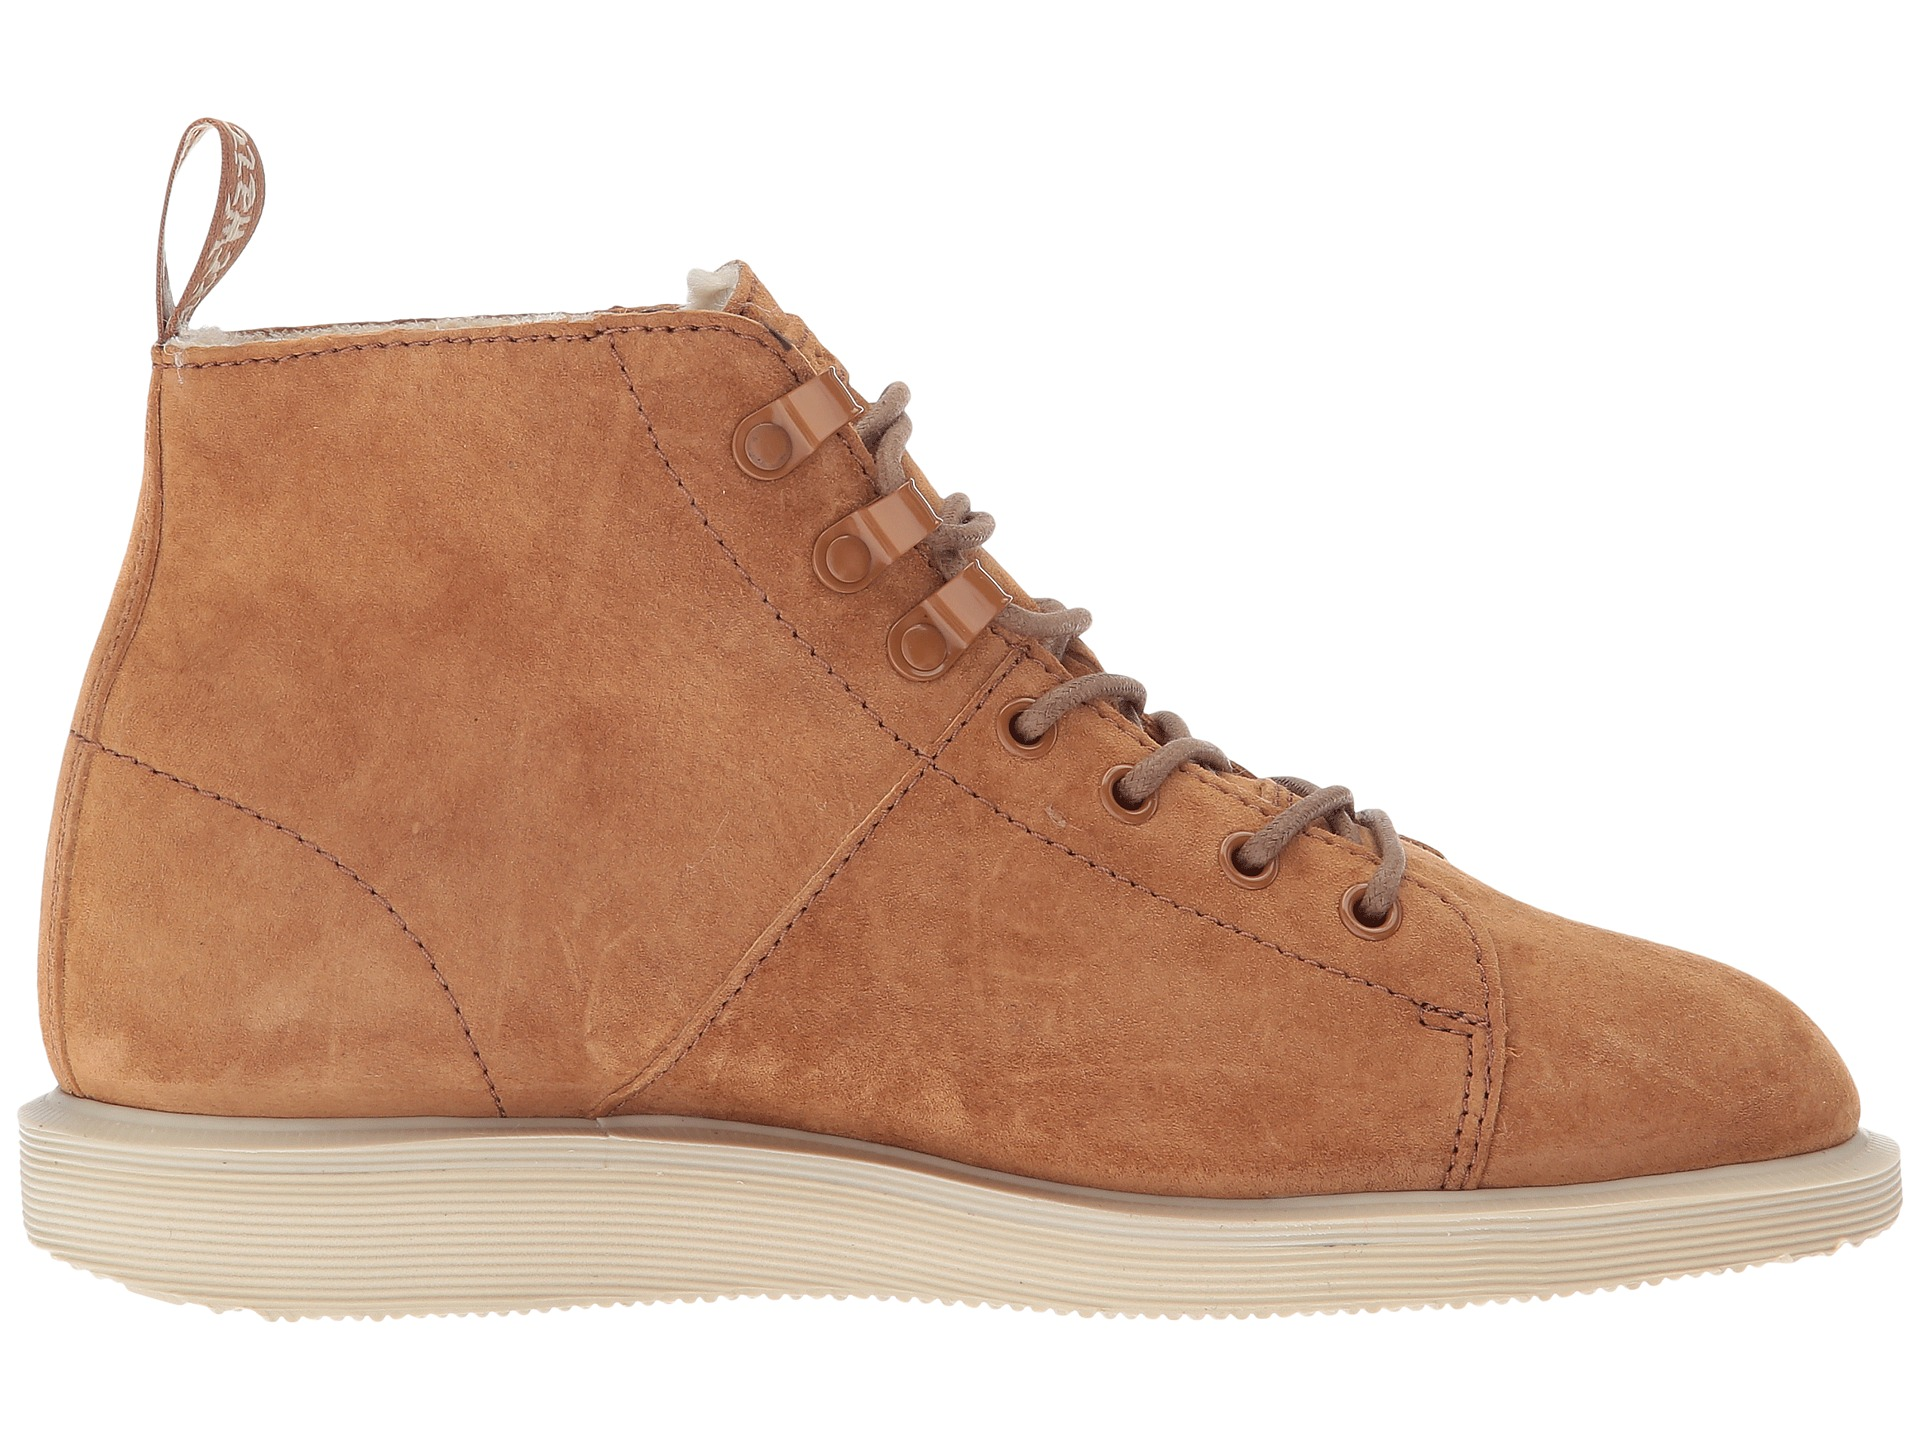 ugg style boots made in uk